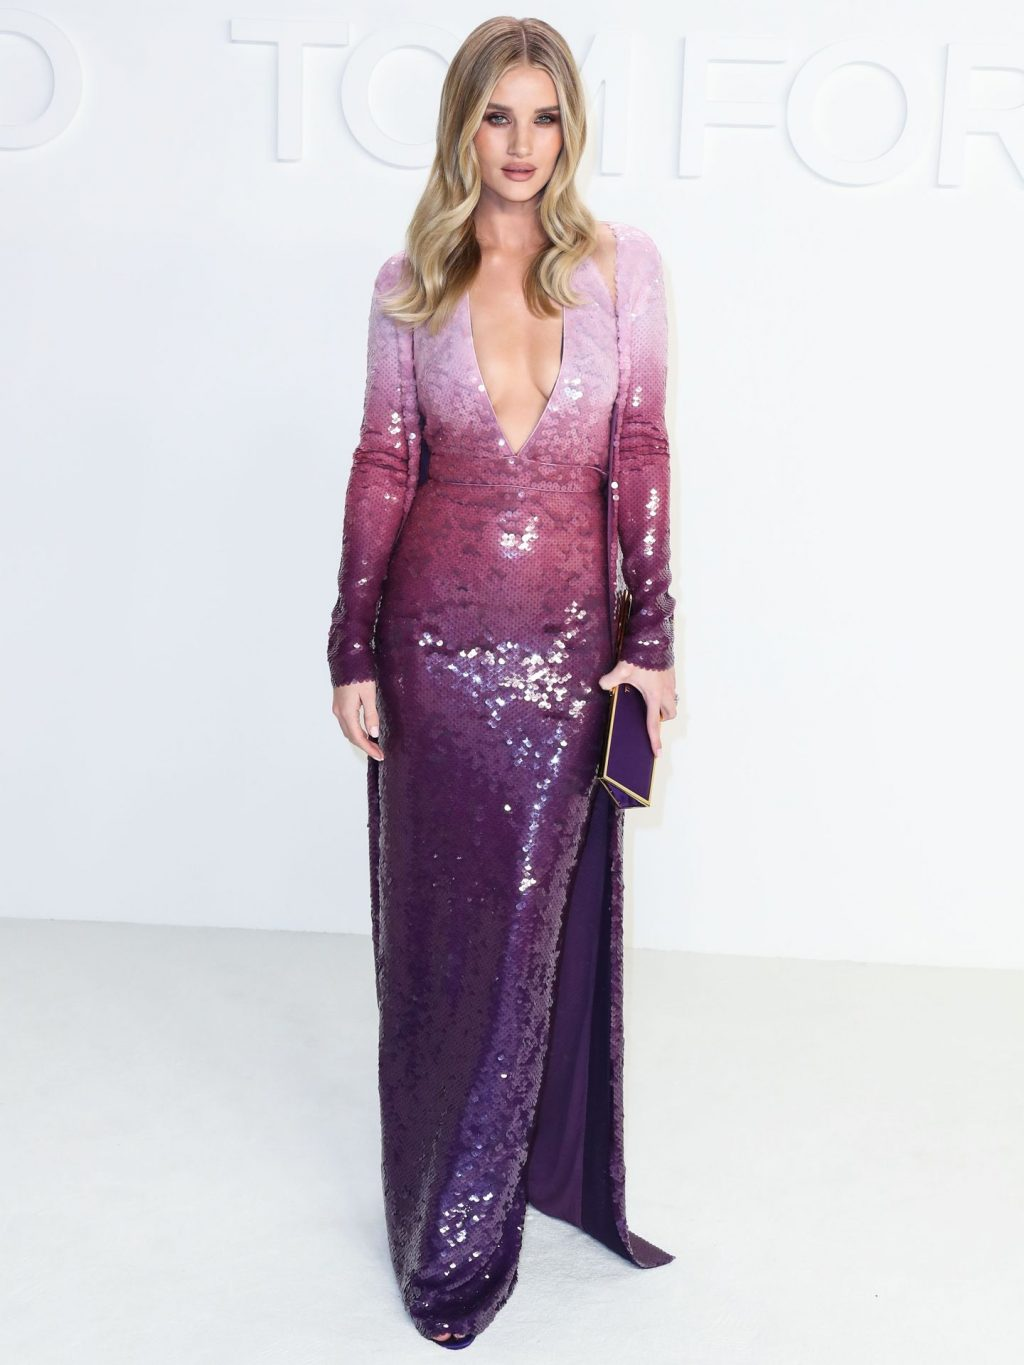 Rosie Huntington Whiteley Sexy The Fappening Blog 67 1024x1365 - Rosie Huntington-Whiteley Shows Her Cleavage at the Tom Ford Fashion Show (115 Photos)